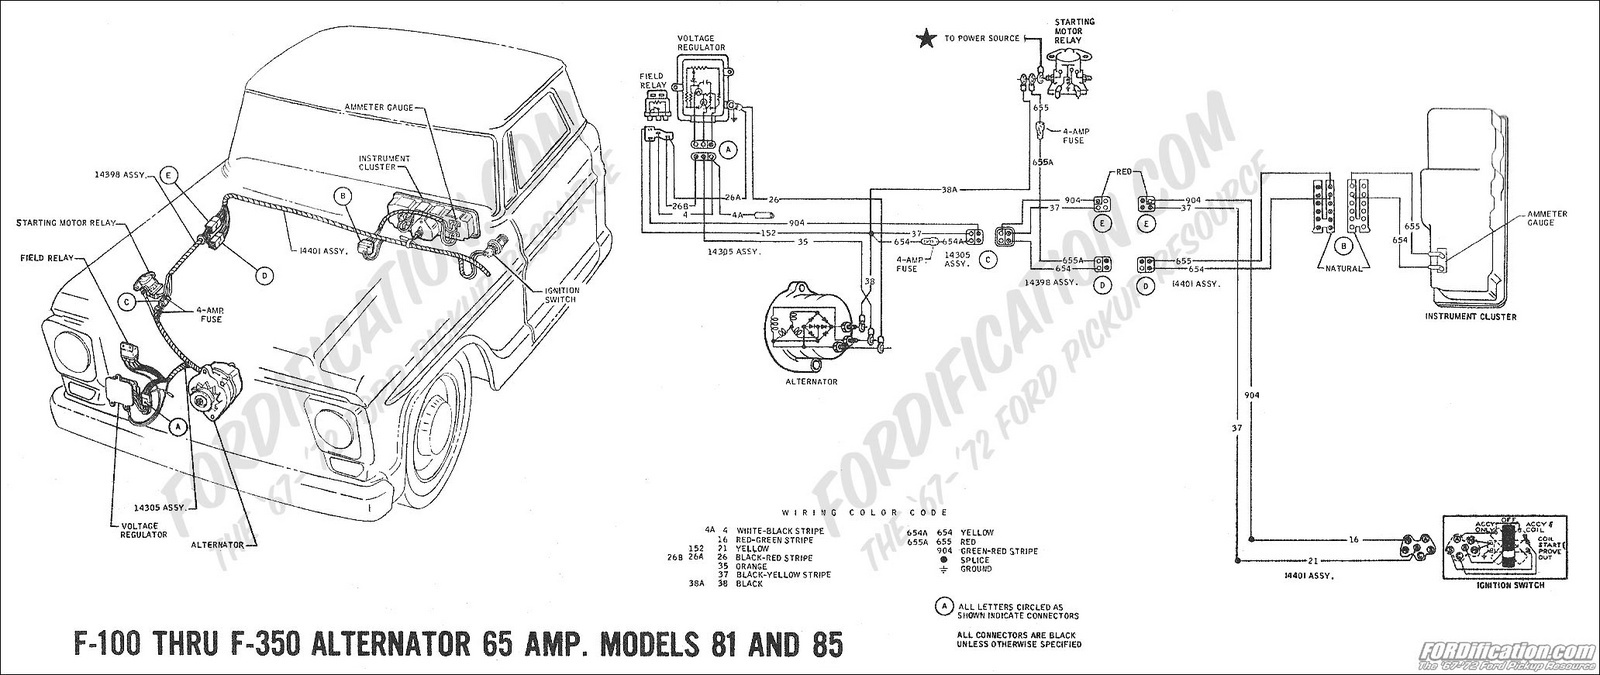 56 chevy truck alternator wiring diagram wiring library chevy wiring harness diagram 56 chevy truck alternator wiring diagram